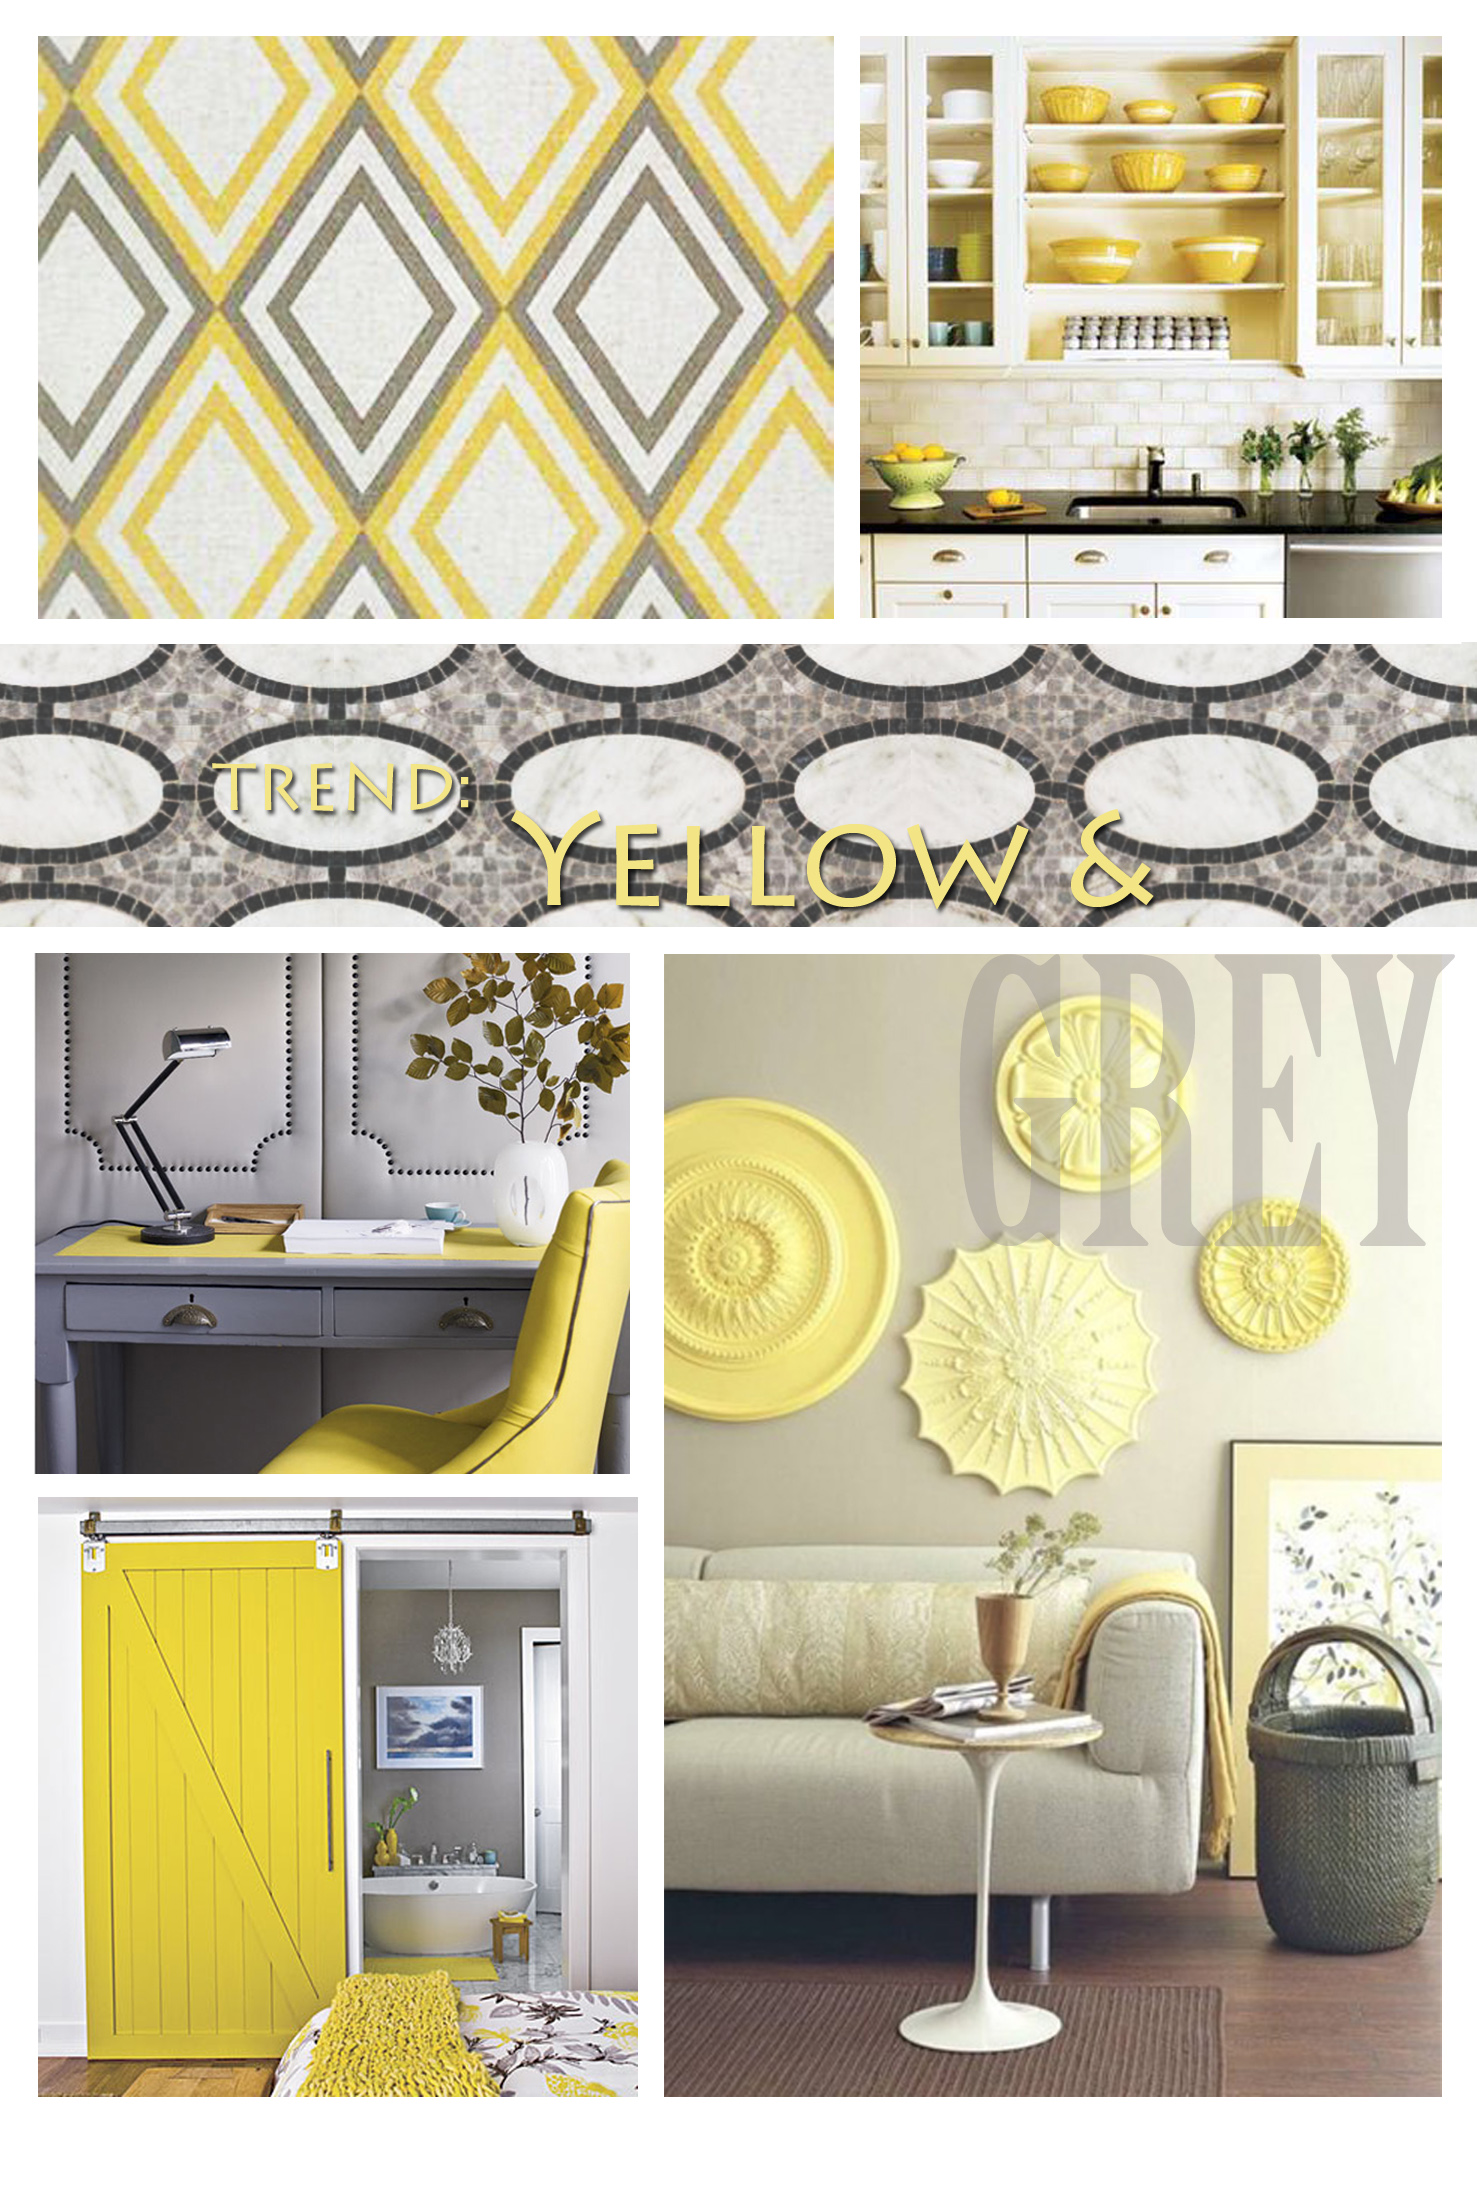 Trend: Yellow and Grey